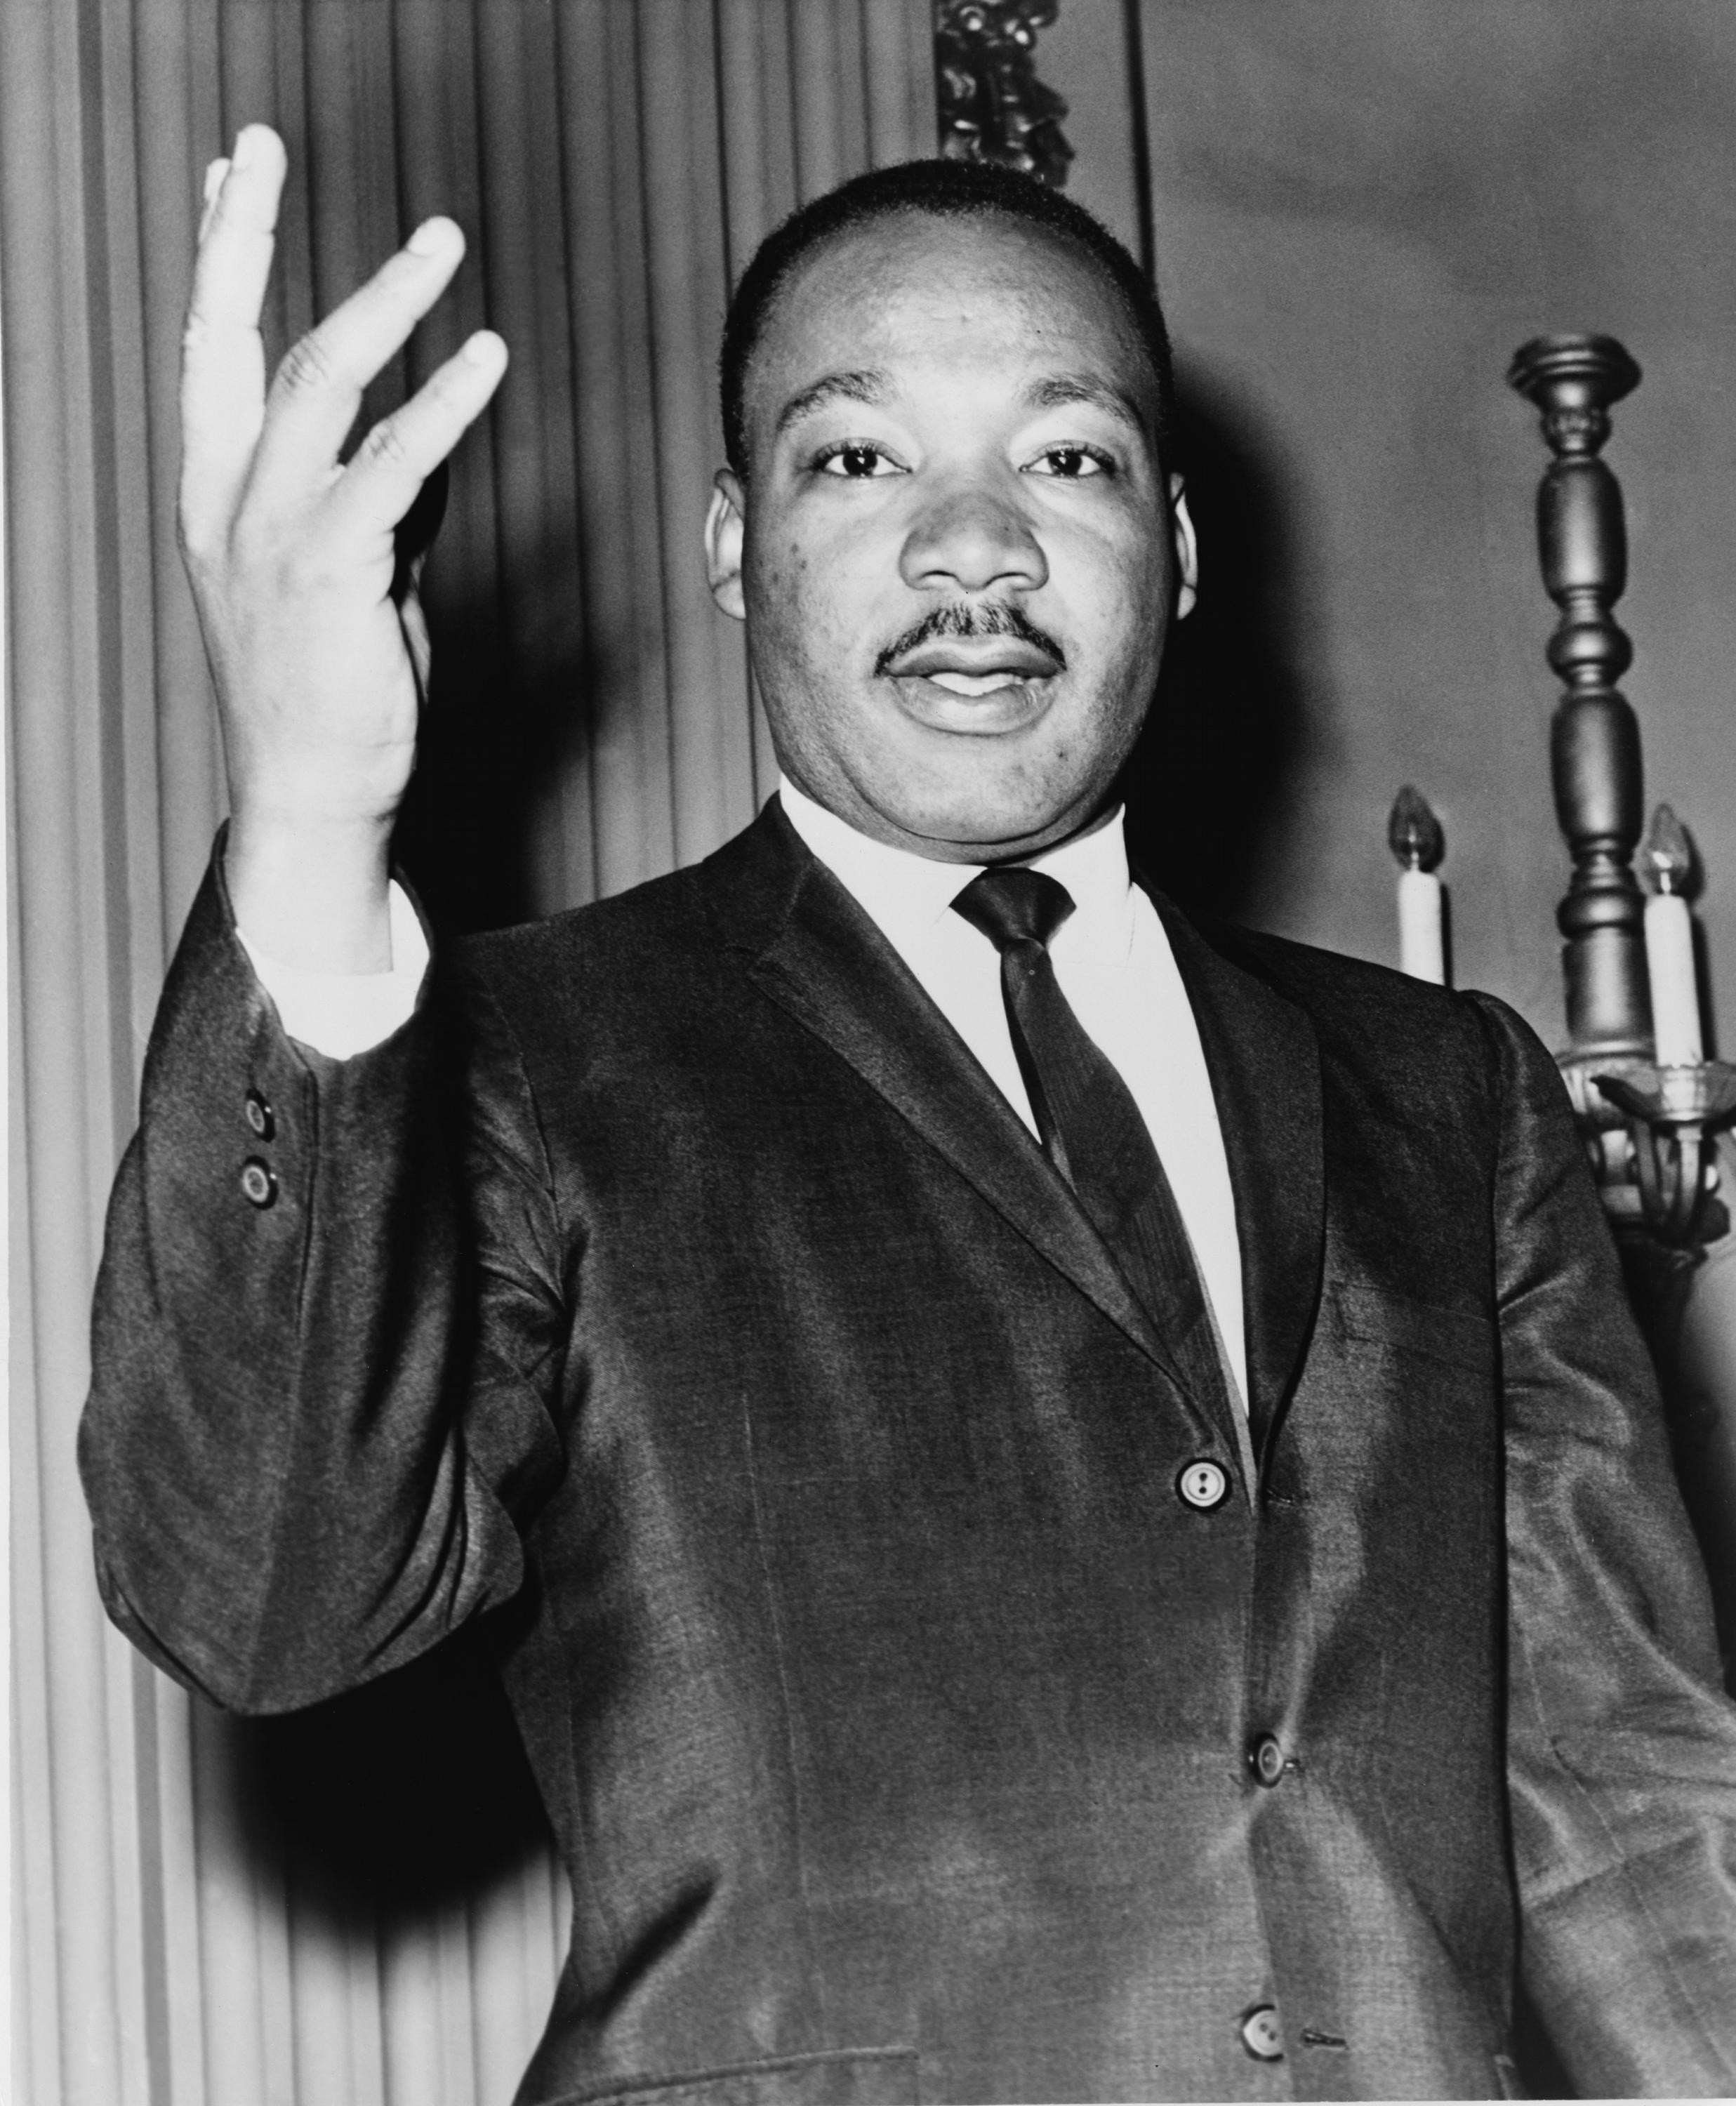 Dr. Martin Luther King, Jr. (Photo in Public Domain)